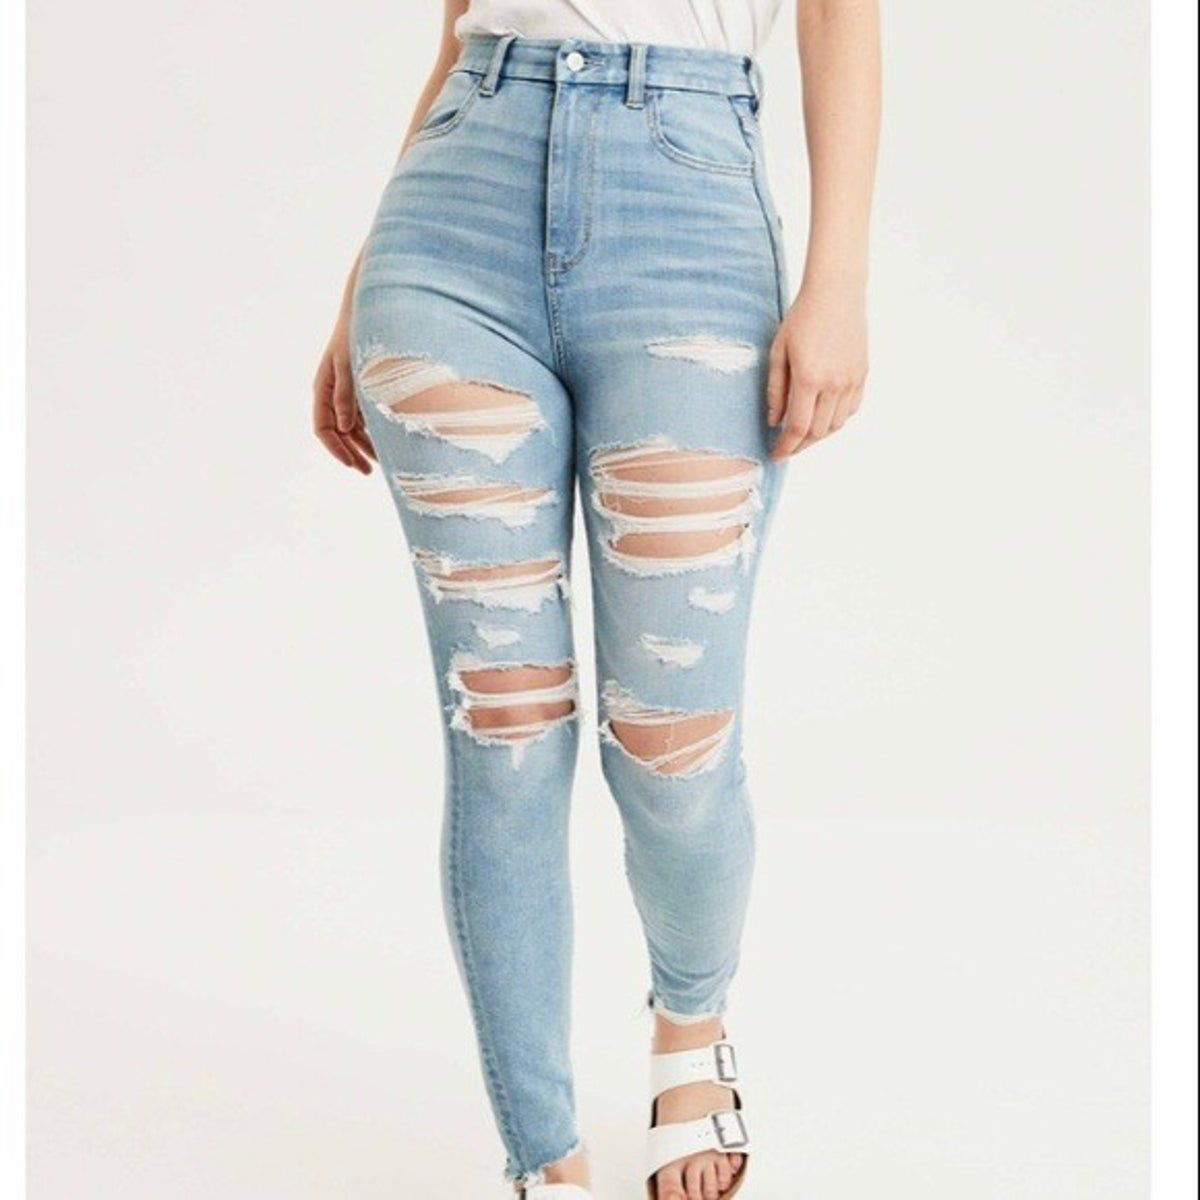 Best Women Jeans Denim Brand Tapered Jeans Tone Jeans